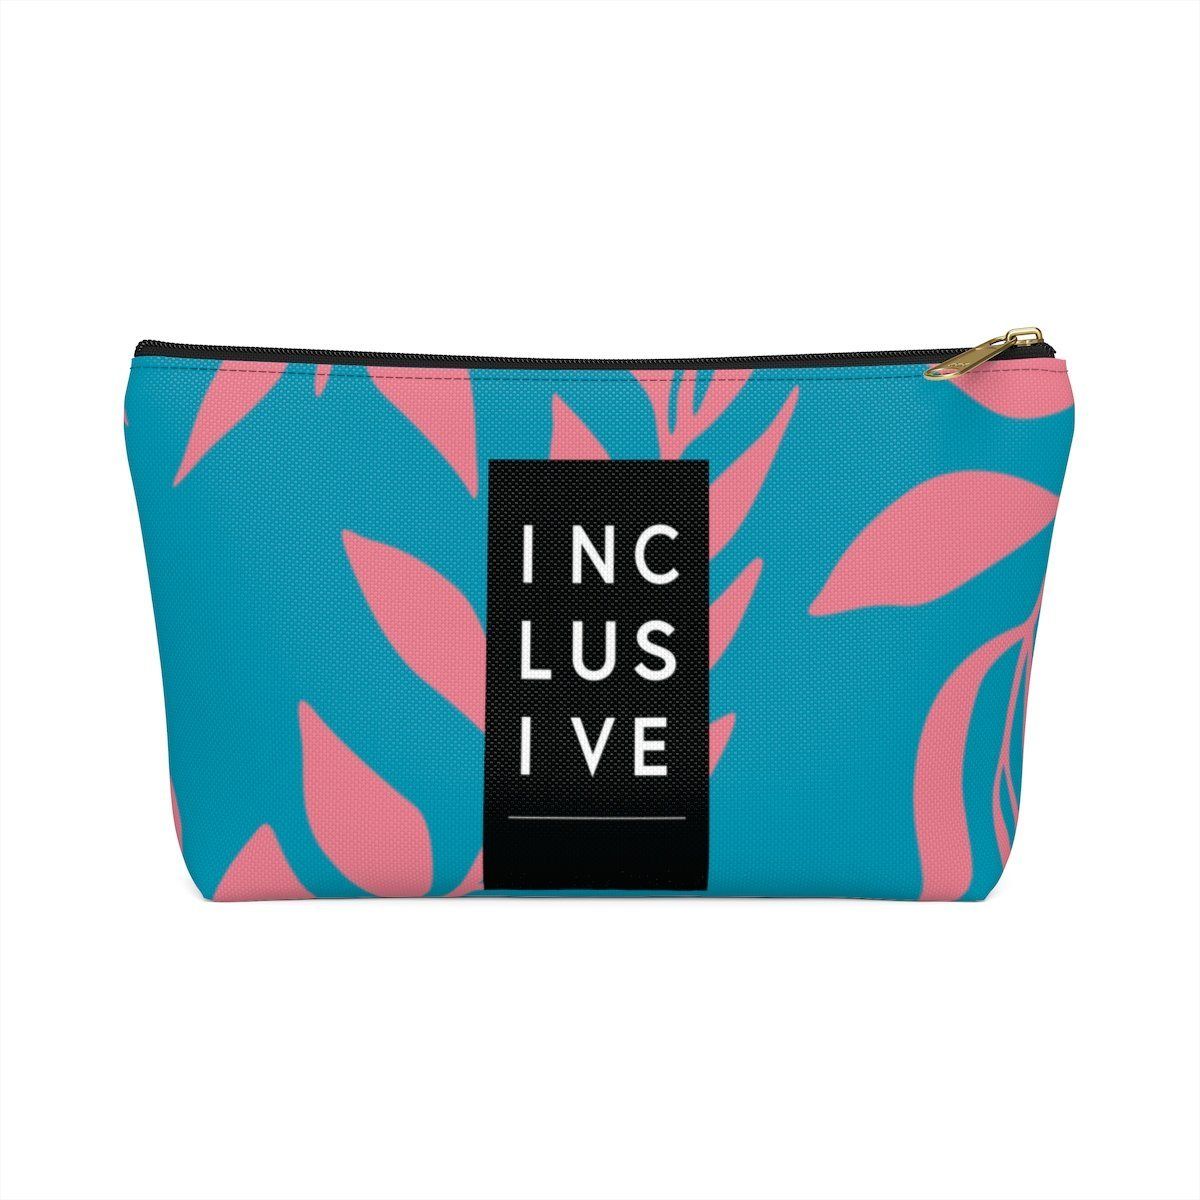 Inclusive Accessory Pouch, Pink Fern